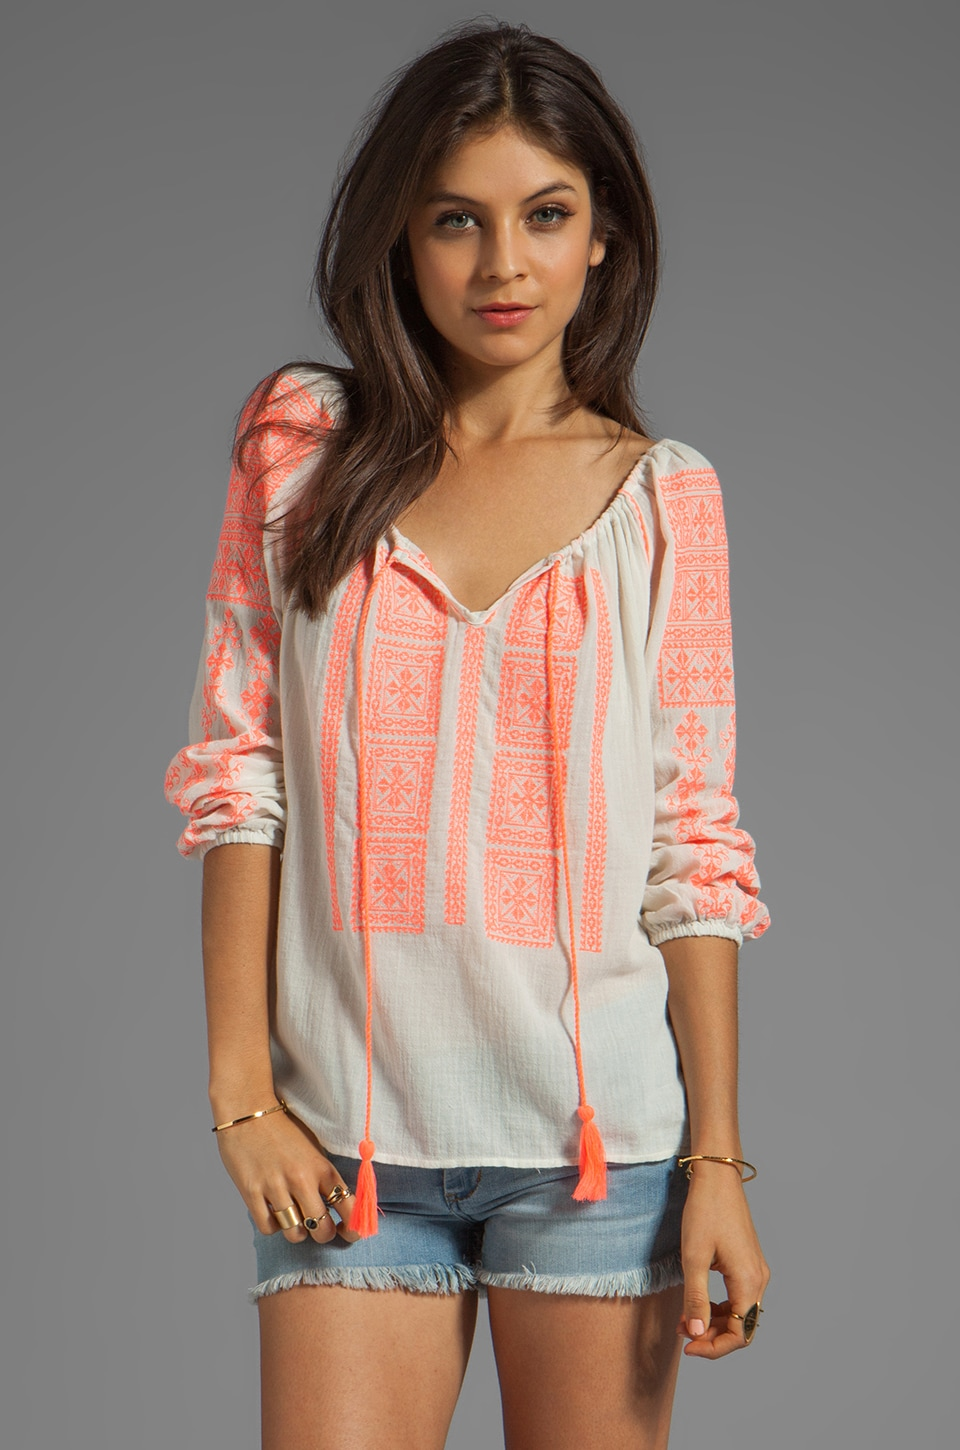 Velvet by Graham & Spencer Adele Embroidered Crinkle Gauze Blouse in Milk/Coral